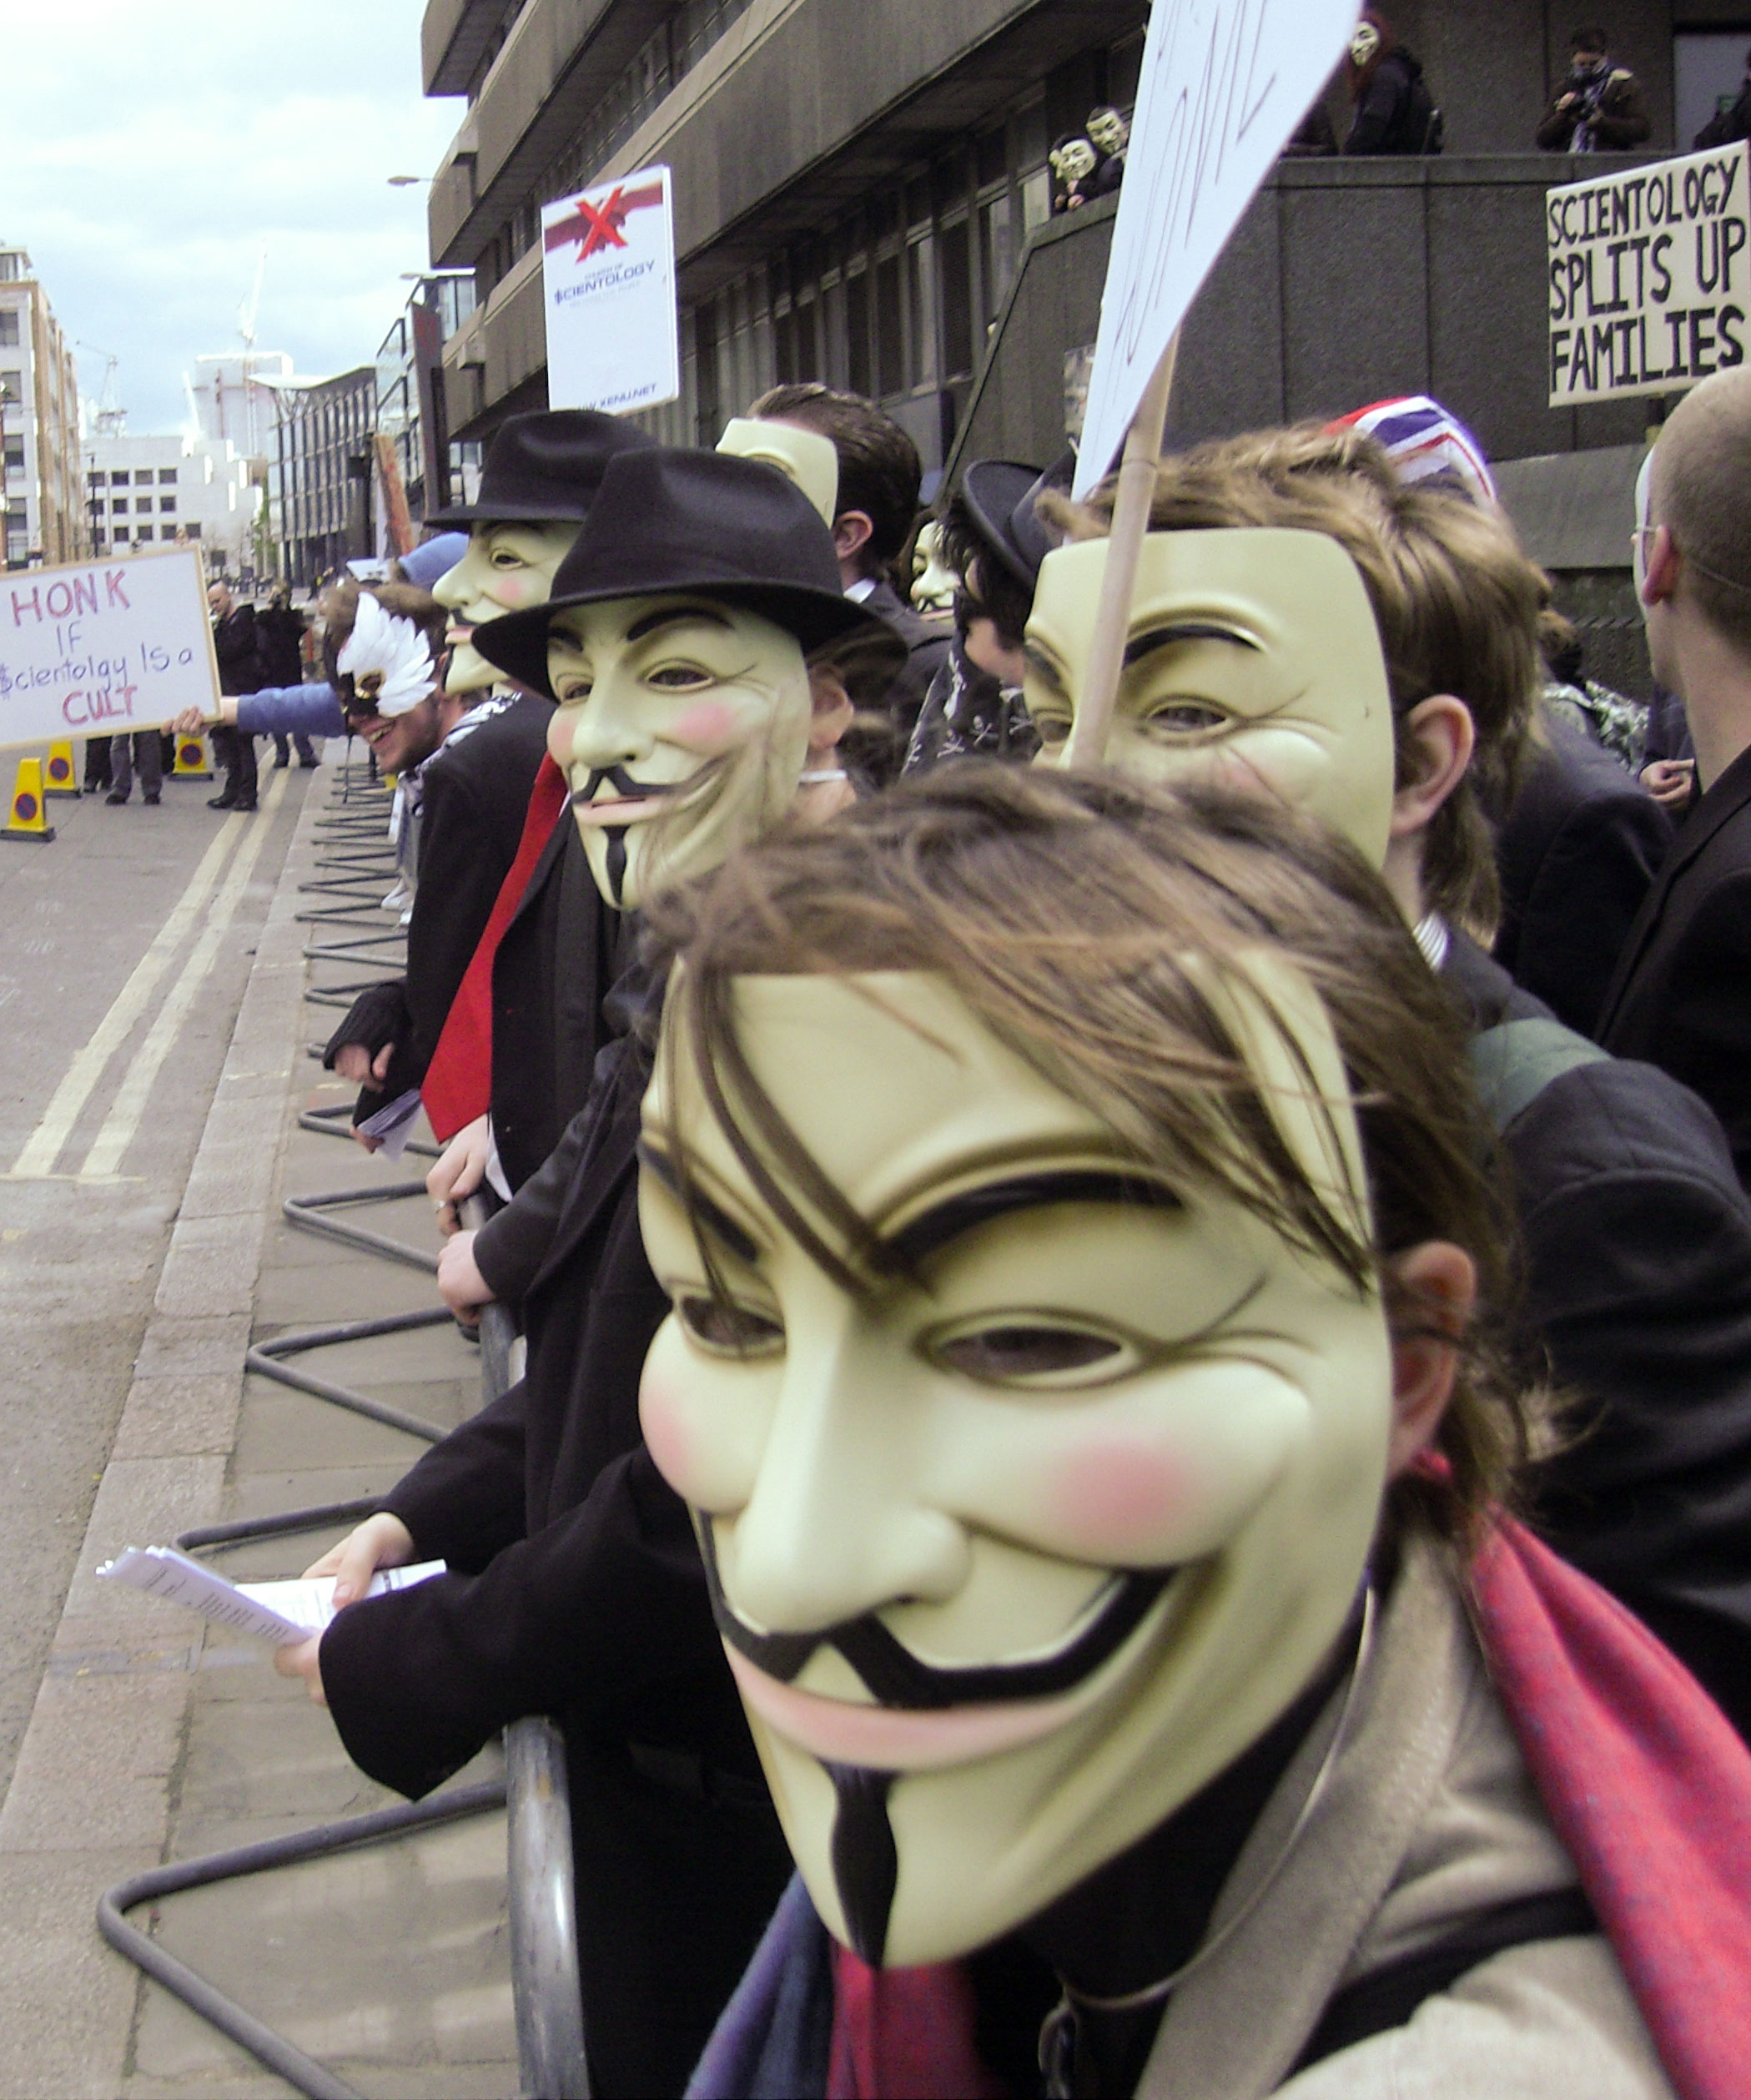 The famous Guy Fawkes mask